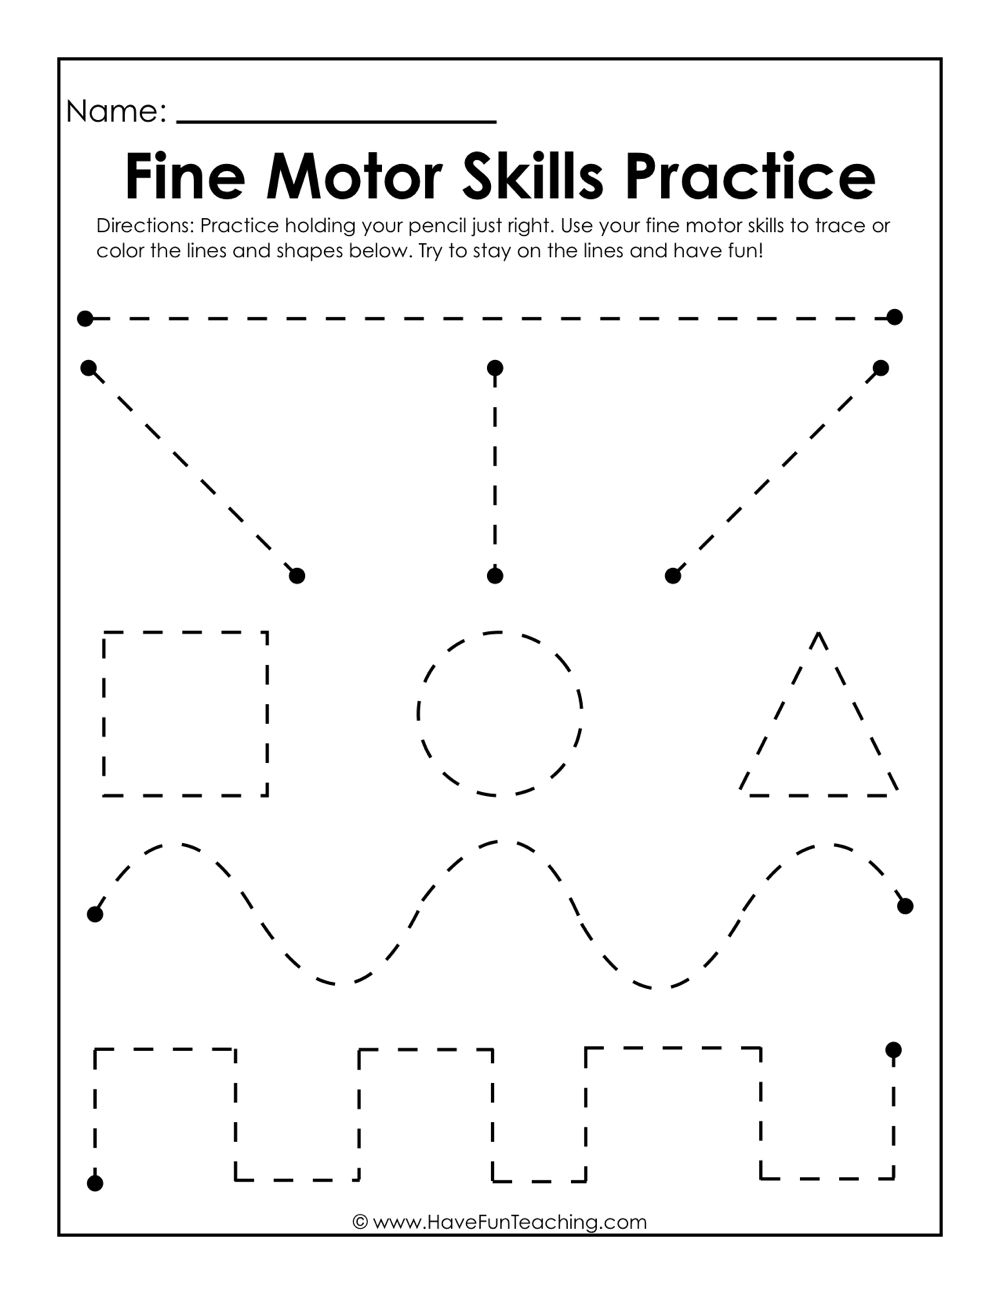 Fine Motor Skills Practice Worksheet | Preschool | Motor Skills | Fine Motor Skills Worksheets And Printables